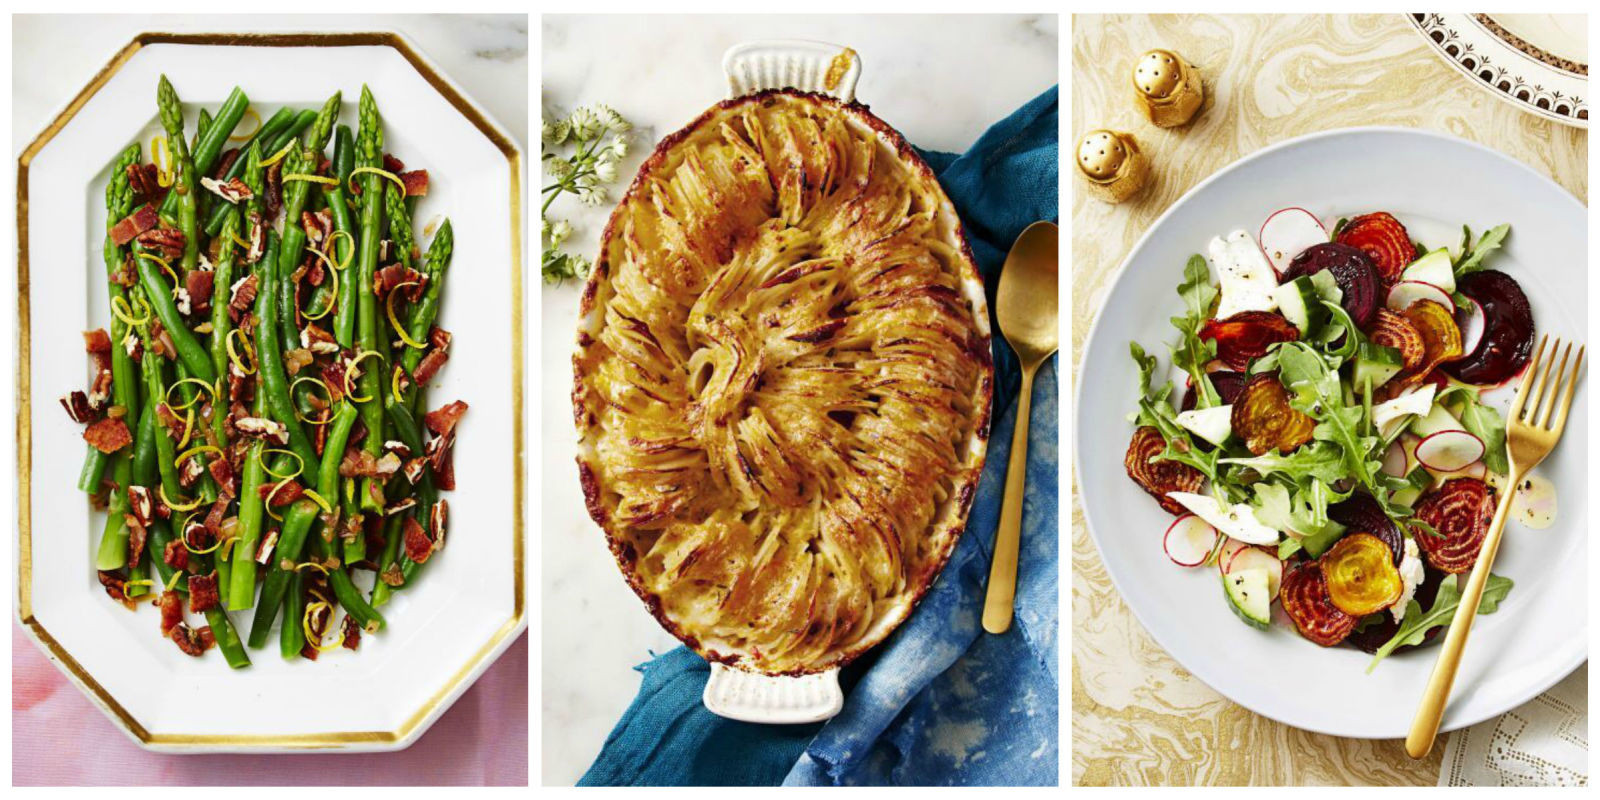 Best Easter Side Dishes  20 Best Easter Side Dishes Easy Recipes for Easter